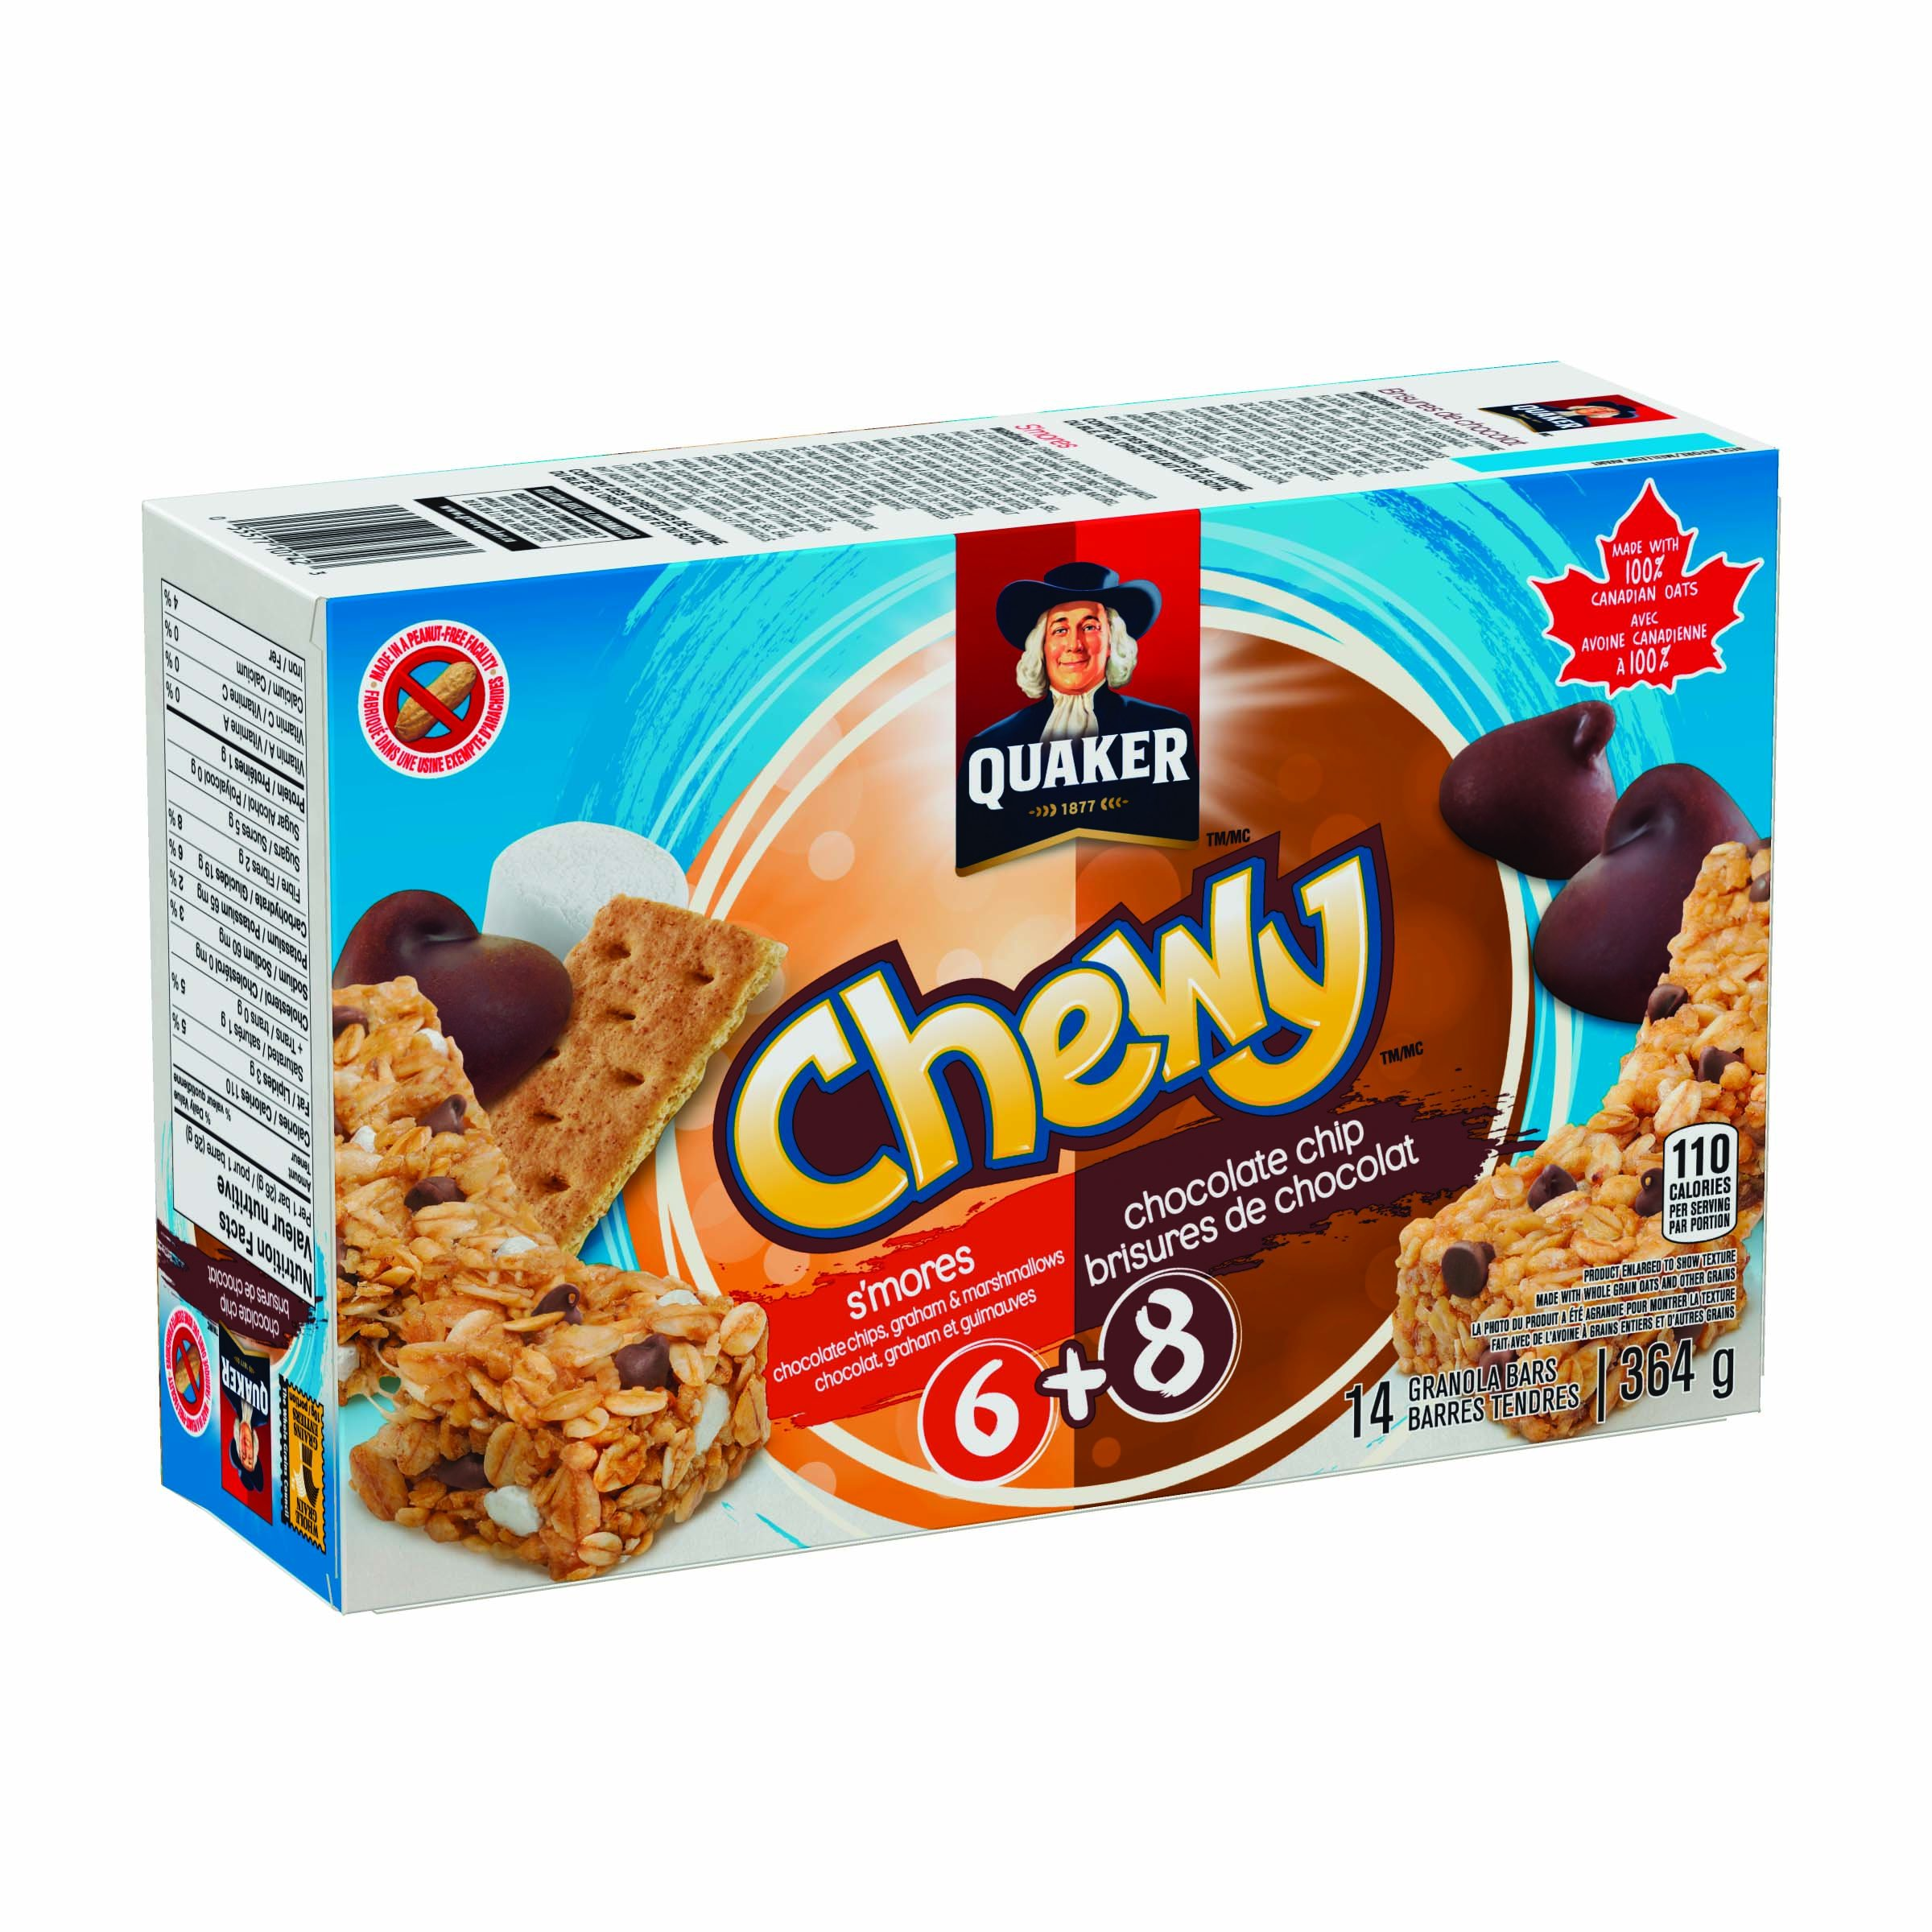 Quaker Chewy Chocolate Chip and Smores Value Pack 6 Smores Plus 8 Chocolate Chip 364 Grams/12.83 Ounces {Imported from Canada} Value Pack (Pack of 12) by Quaker